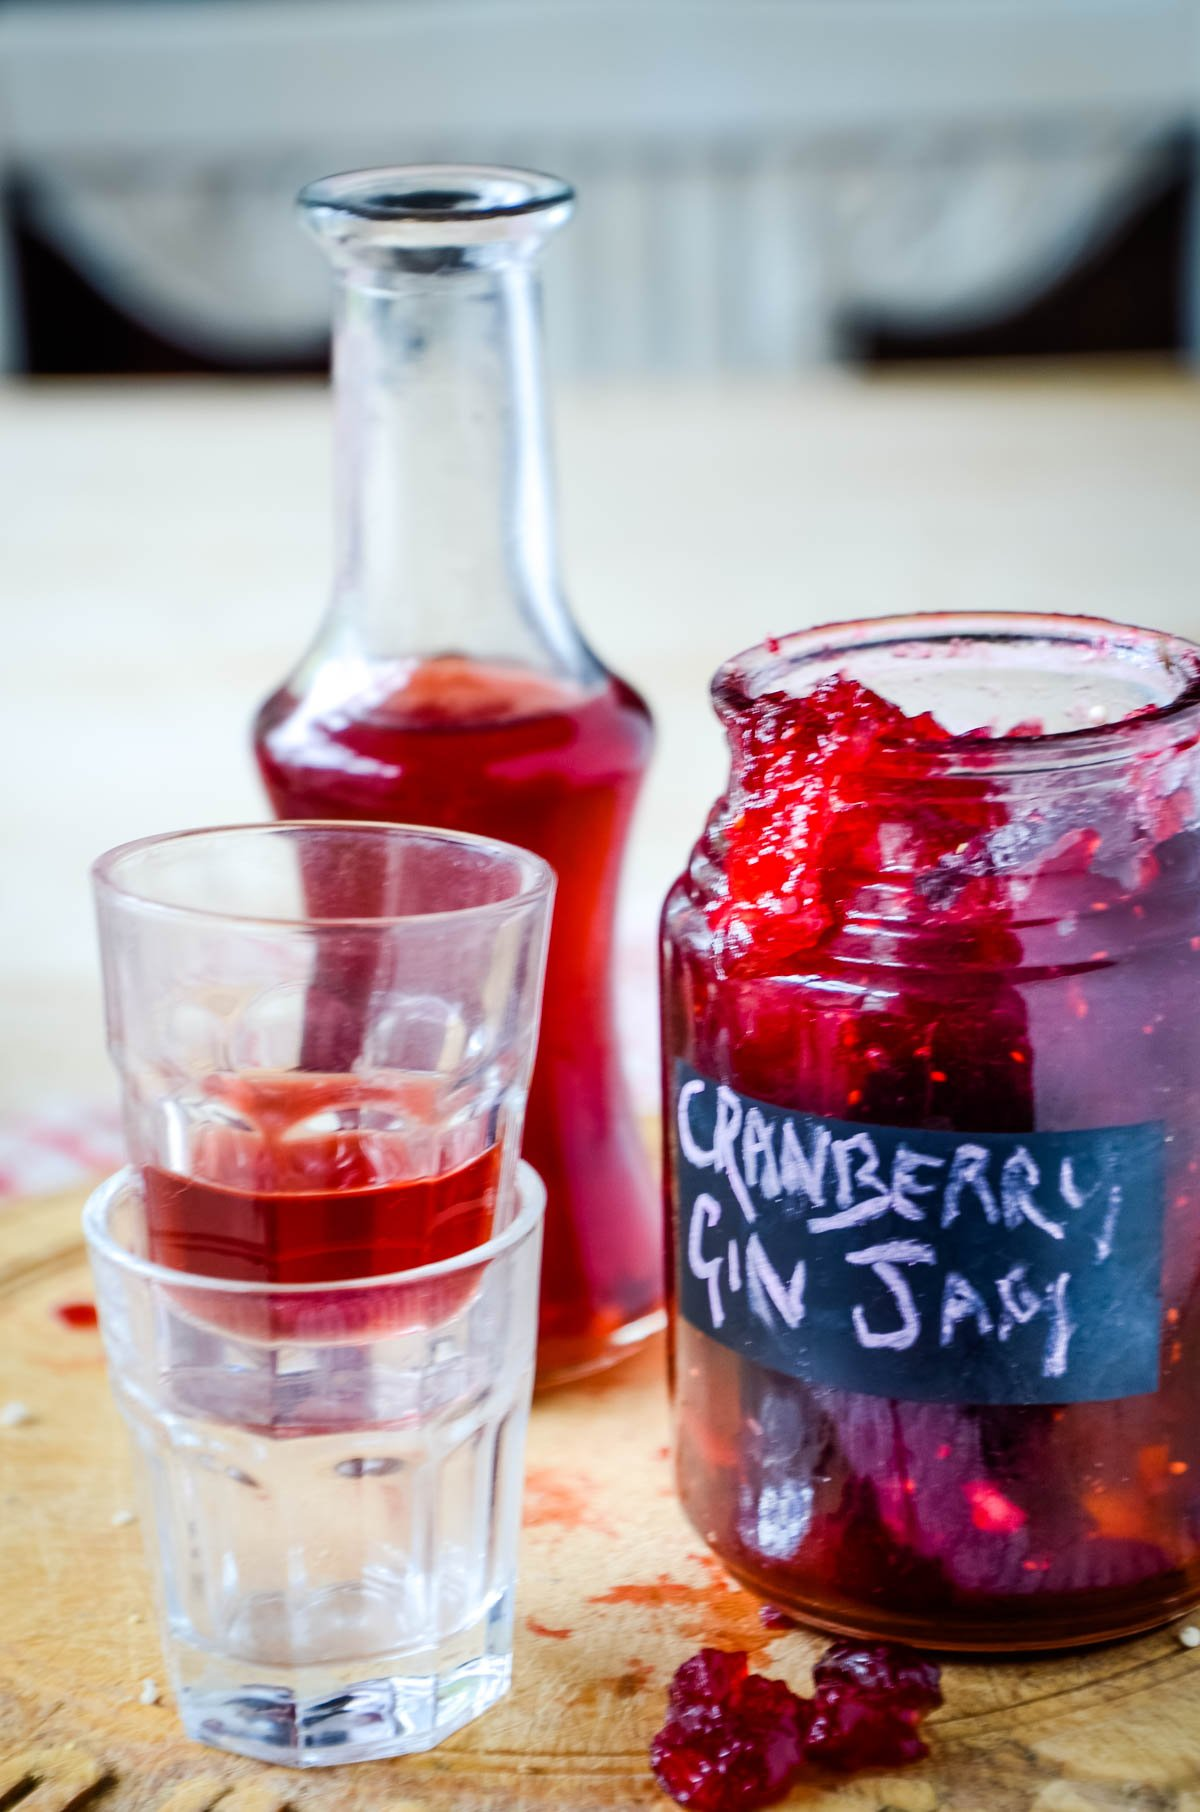 gin bottle and jar or jam